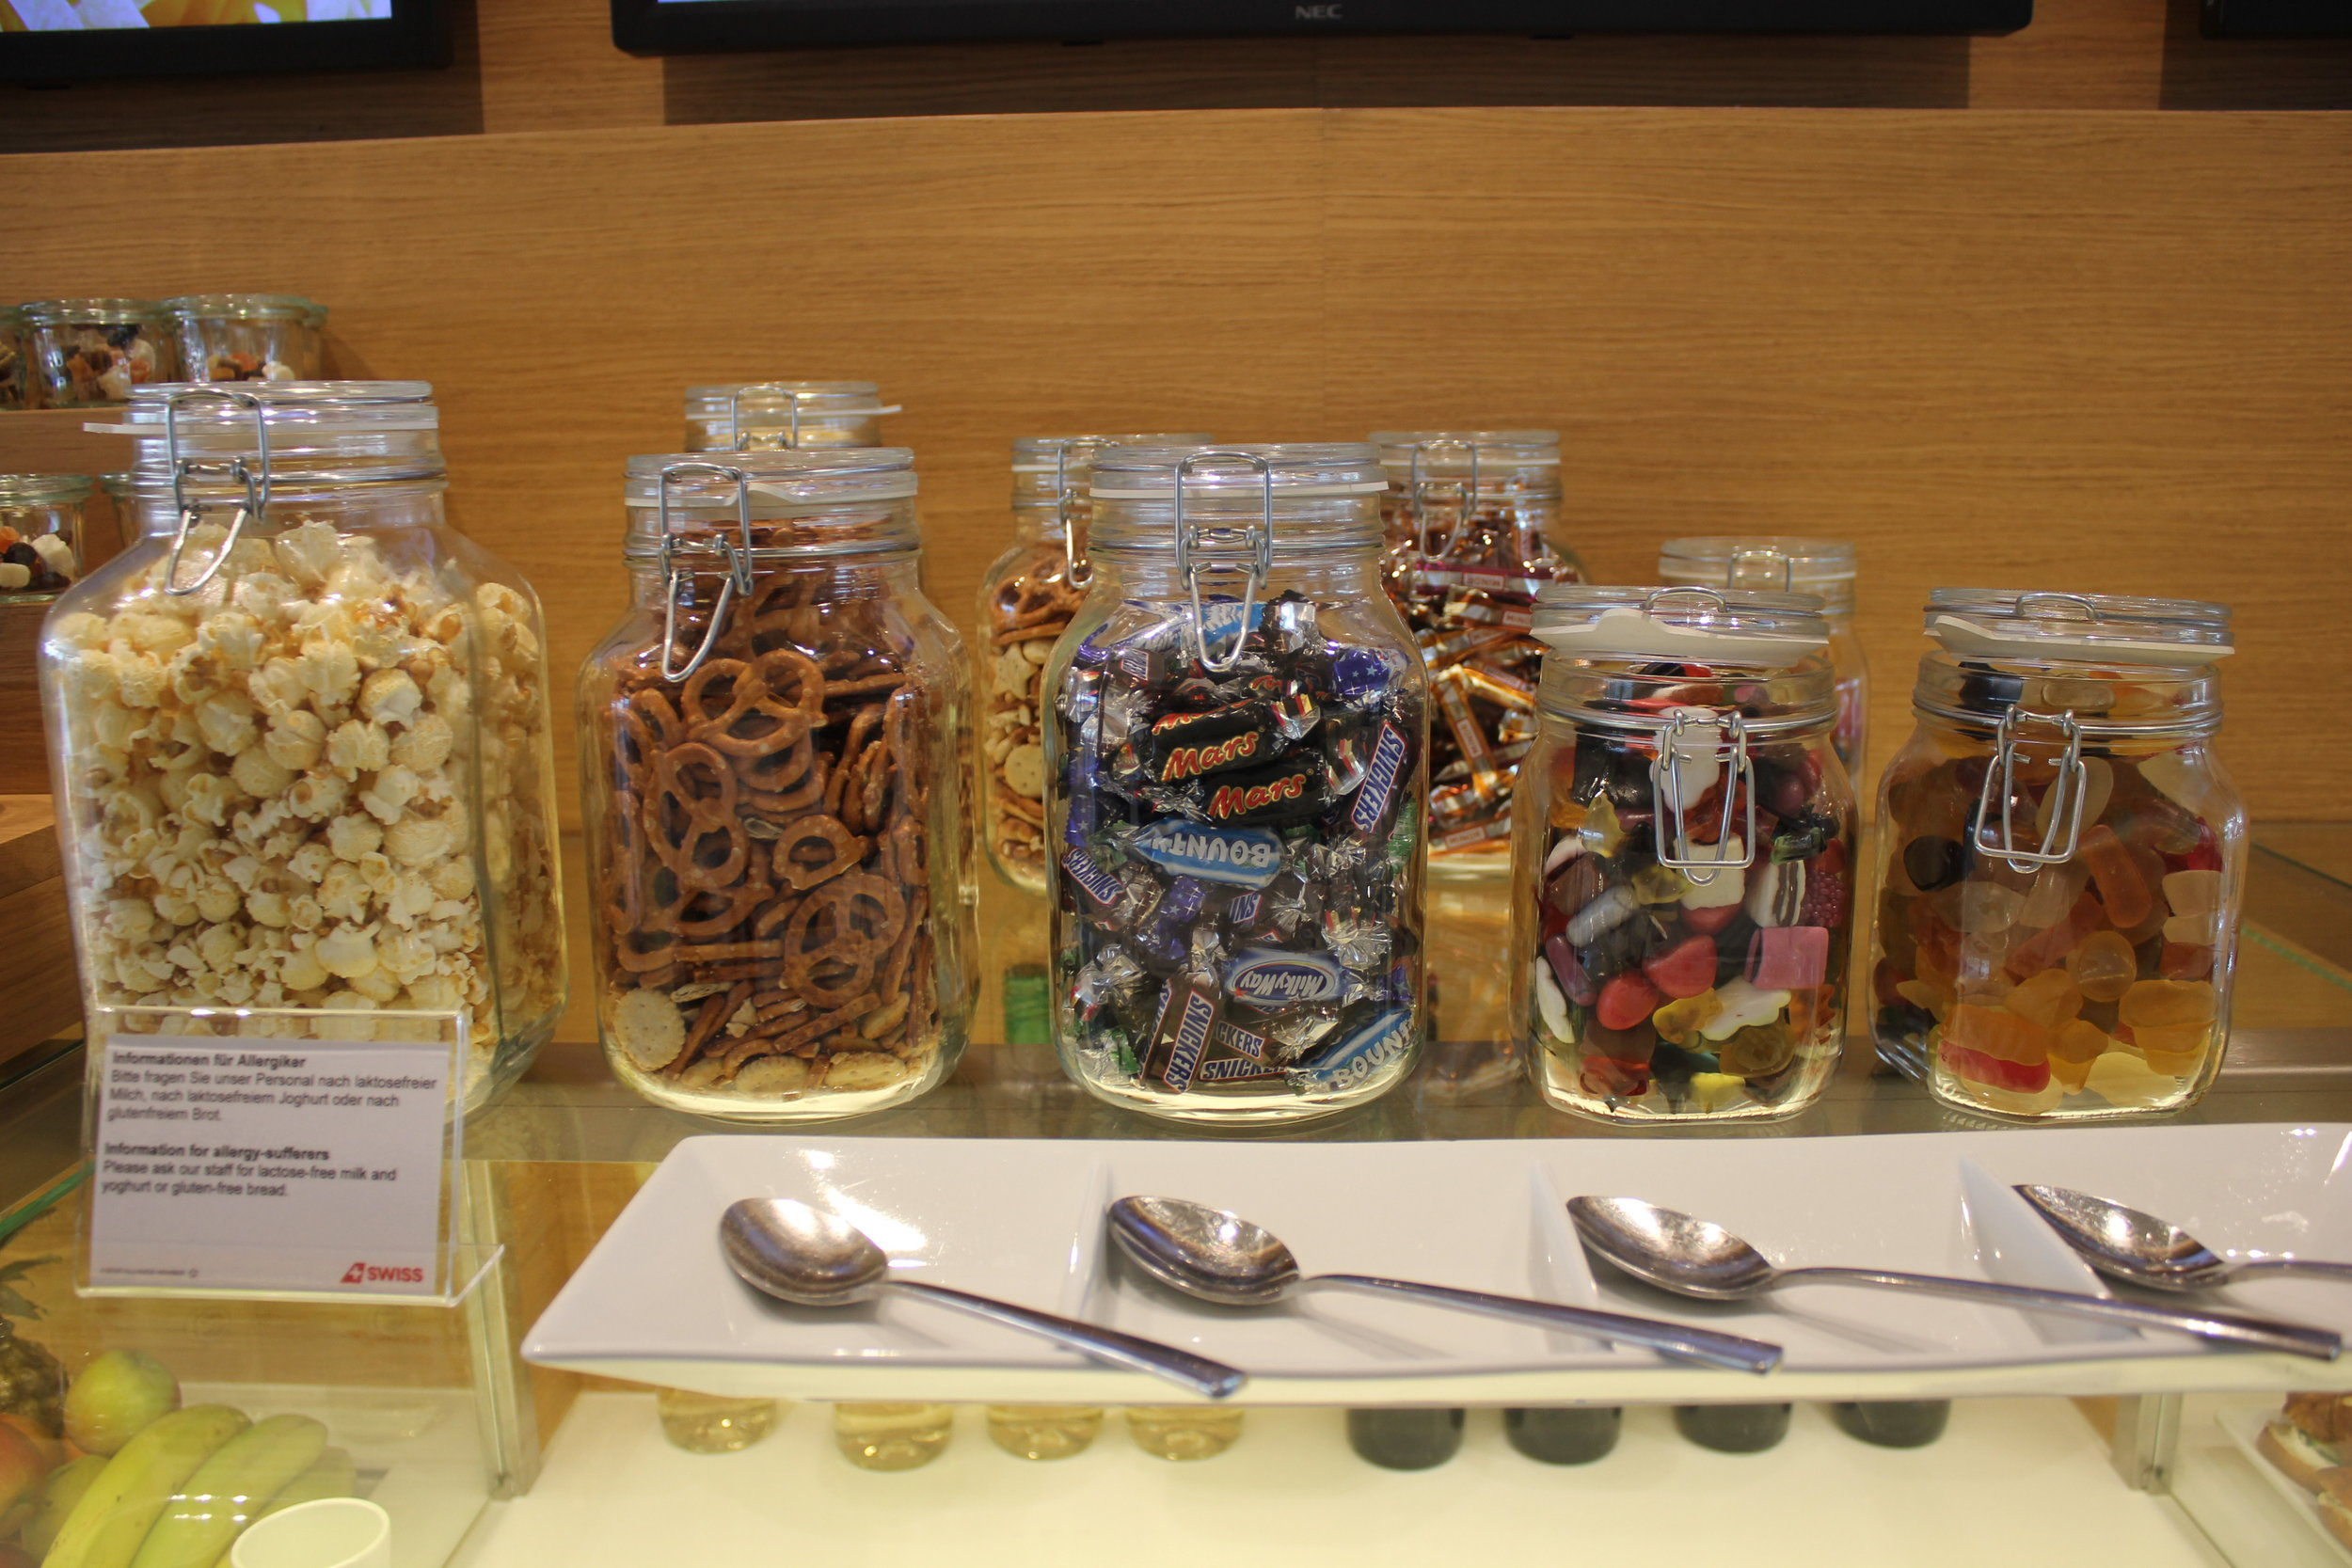 Swiss Senator Lounge Zurich – Snacks